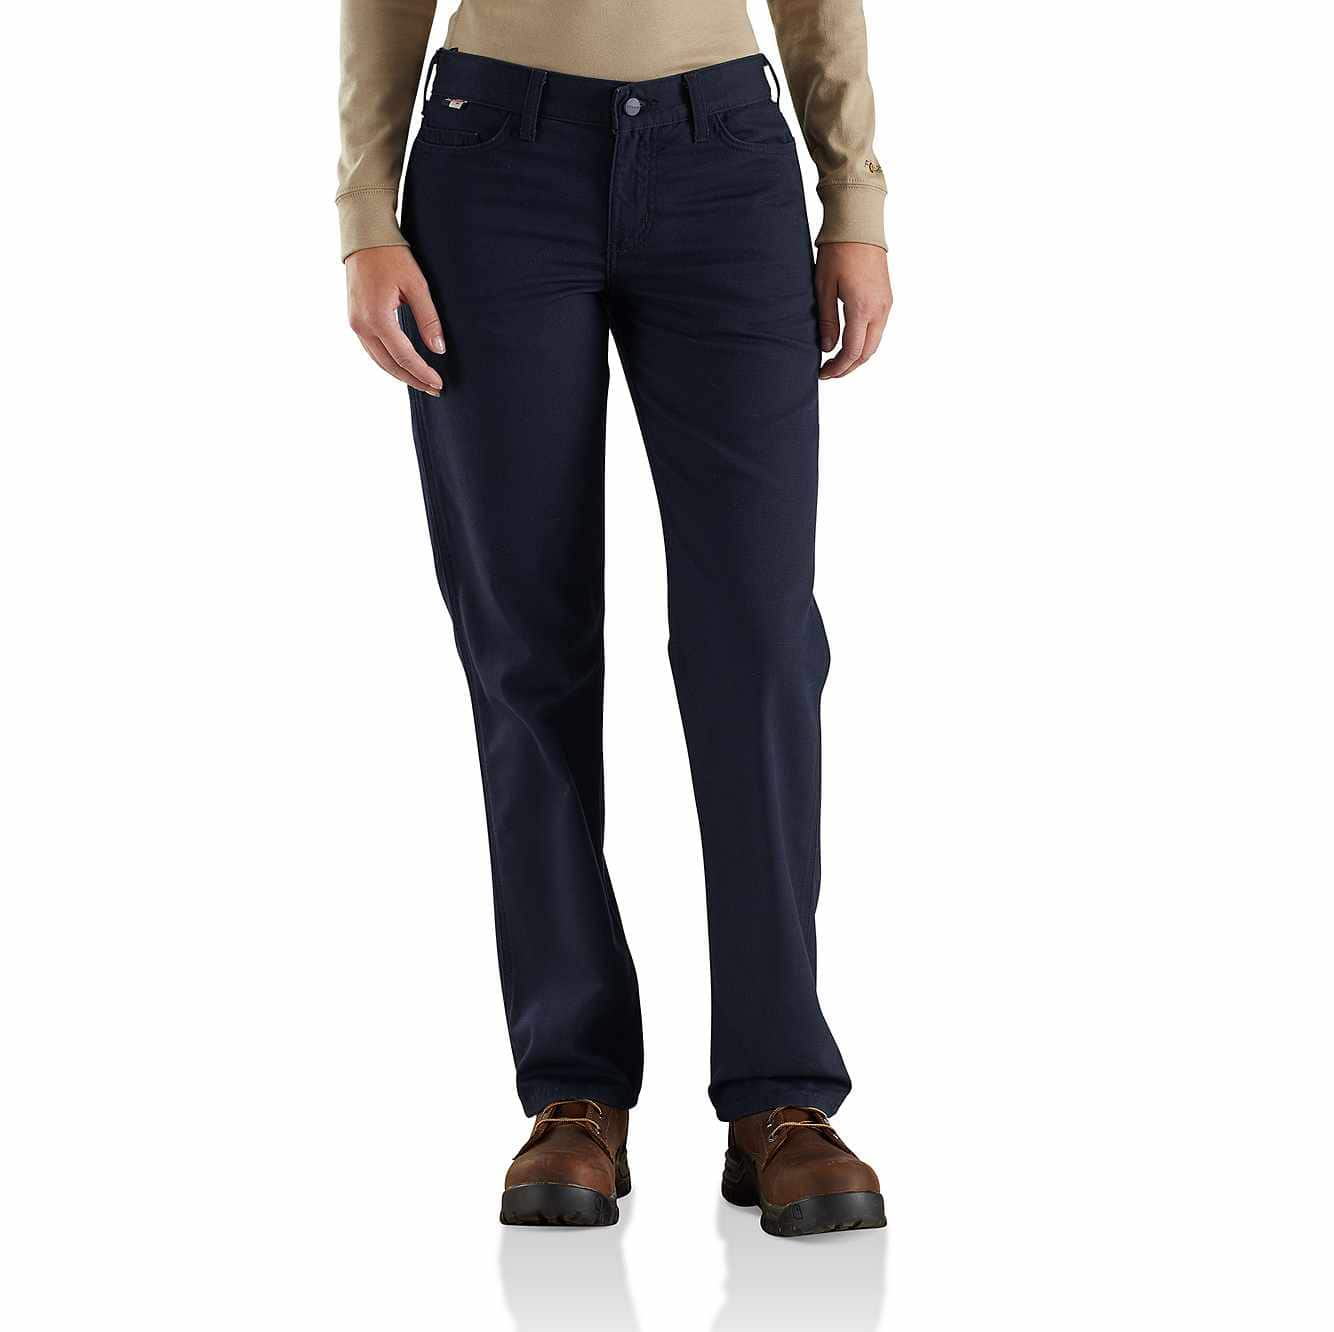 Picture of Women's FR Original-Fit Rugged Flex®Canvas Pant in Dark Navy